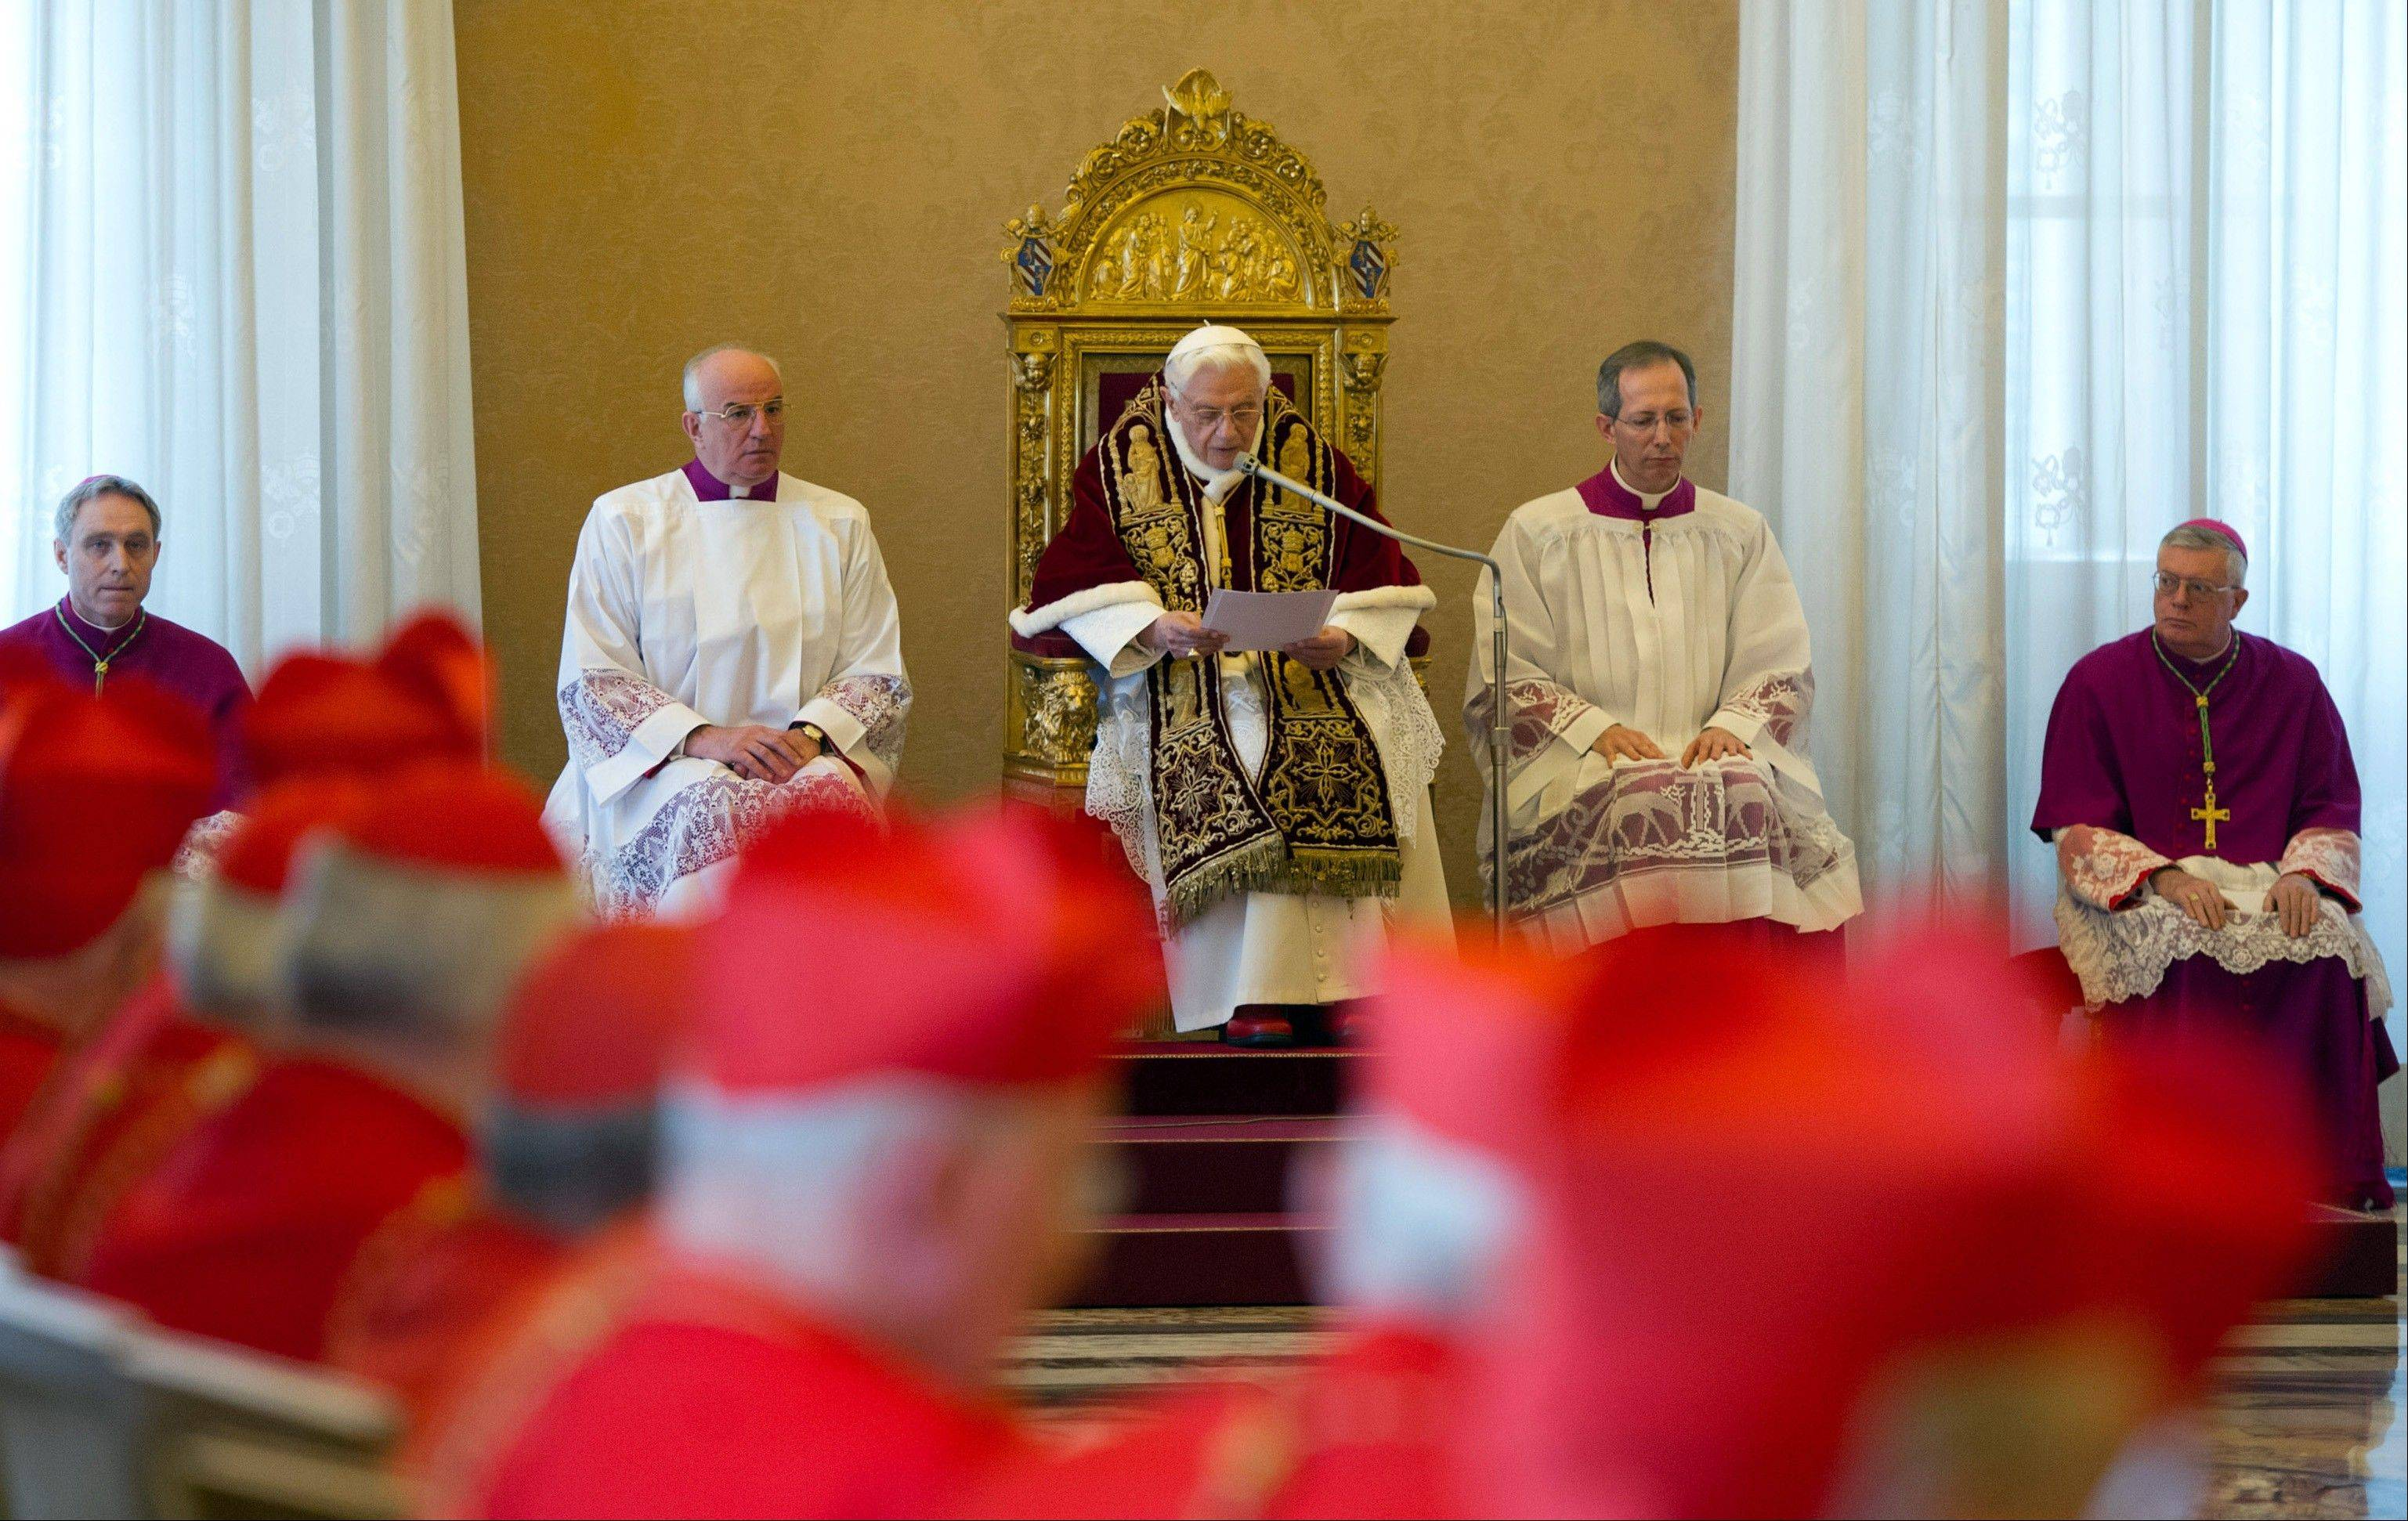 Pope Benedict XVI, center, reads a document in Latin where he announces his resignation Monday during a meeting of Vatican cardinals.